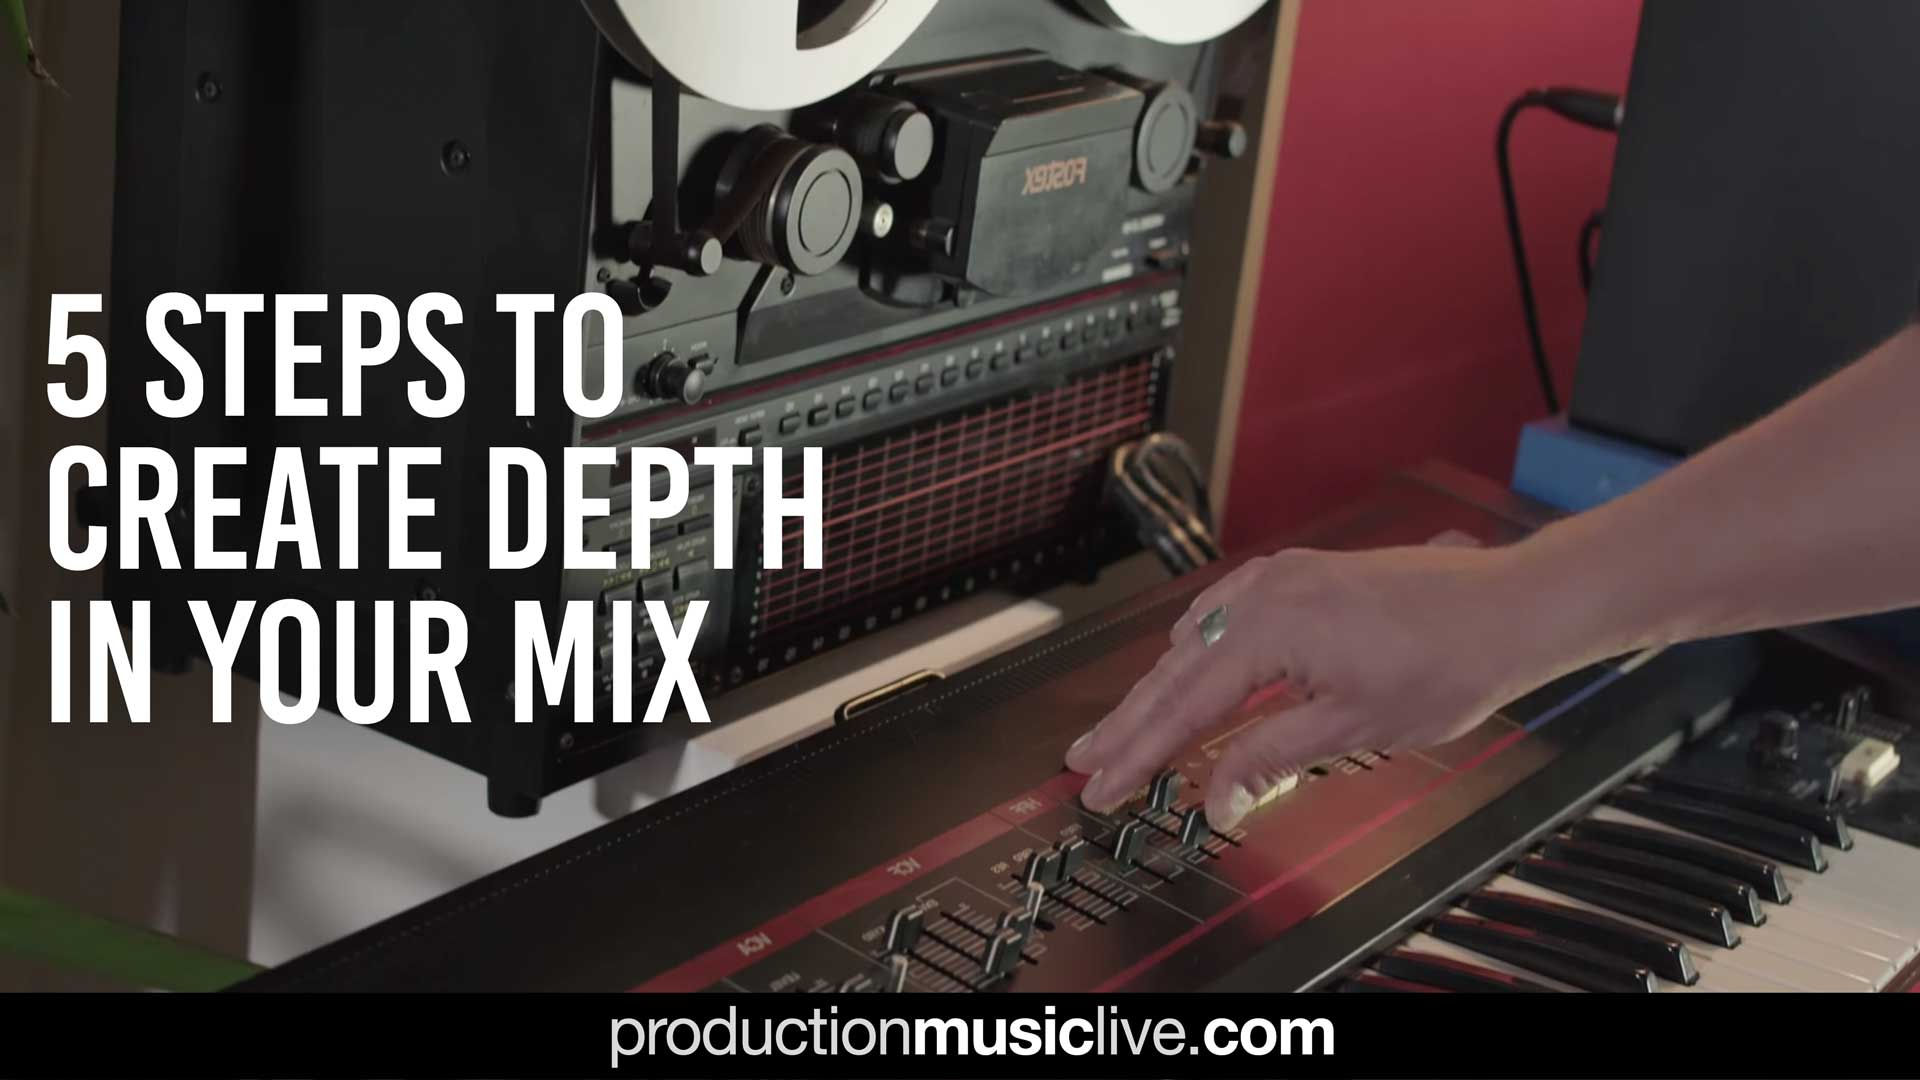 5 steps to create deep mix